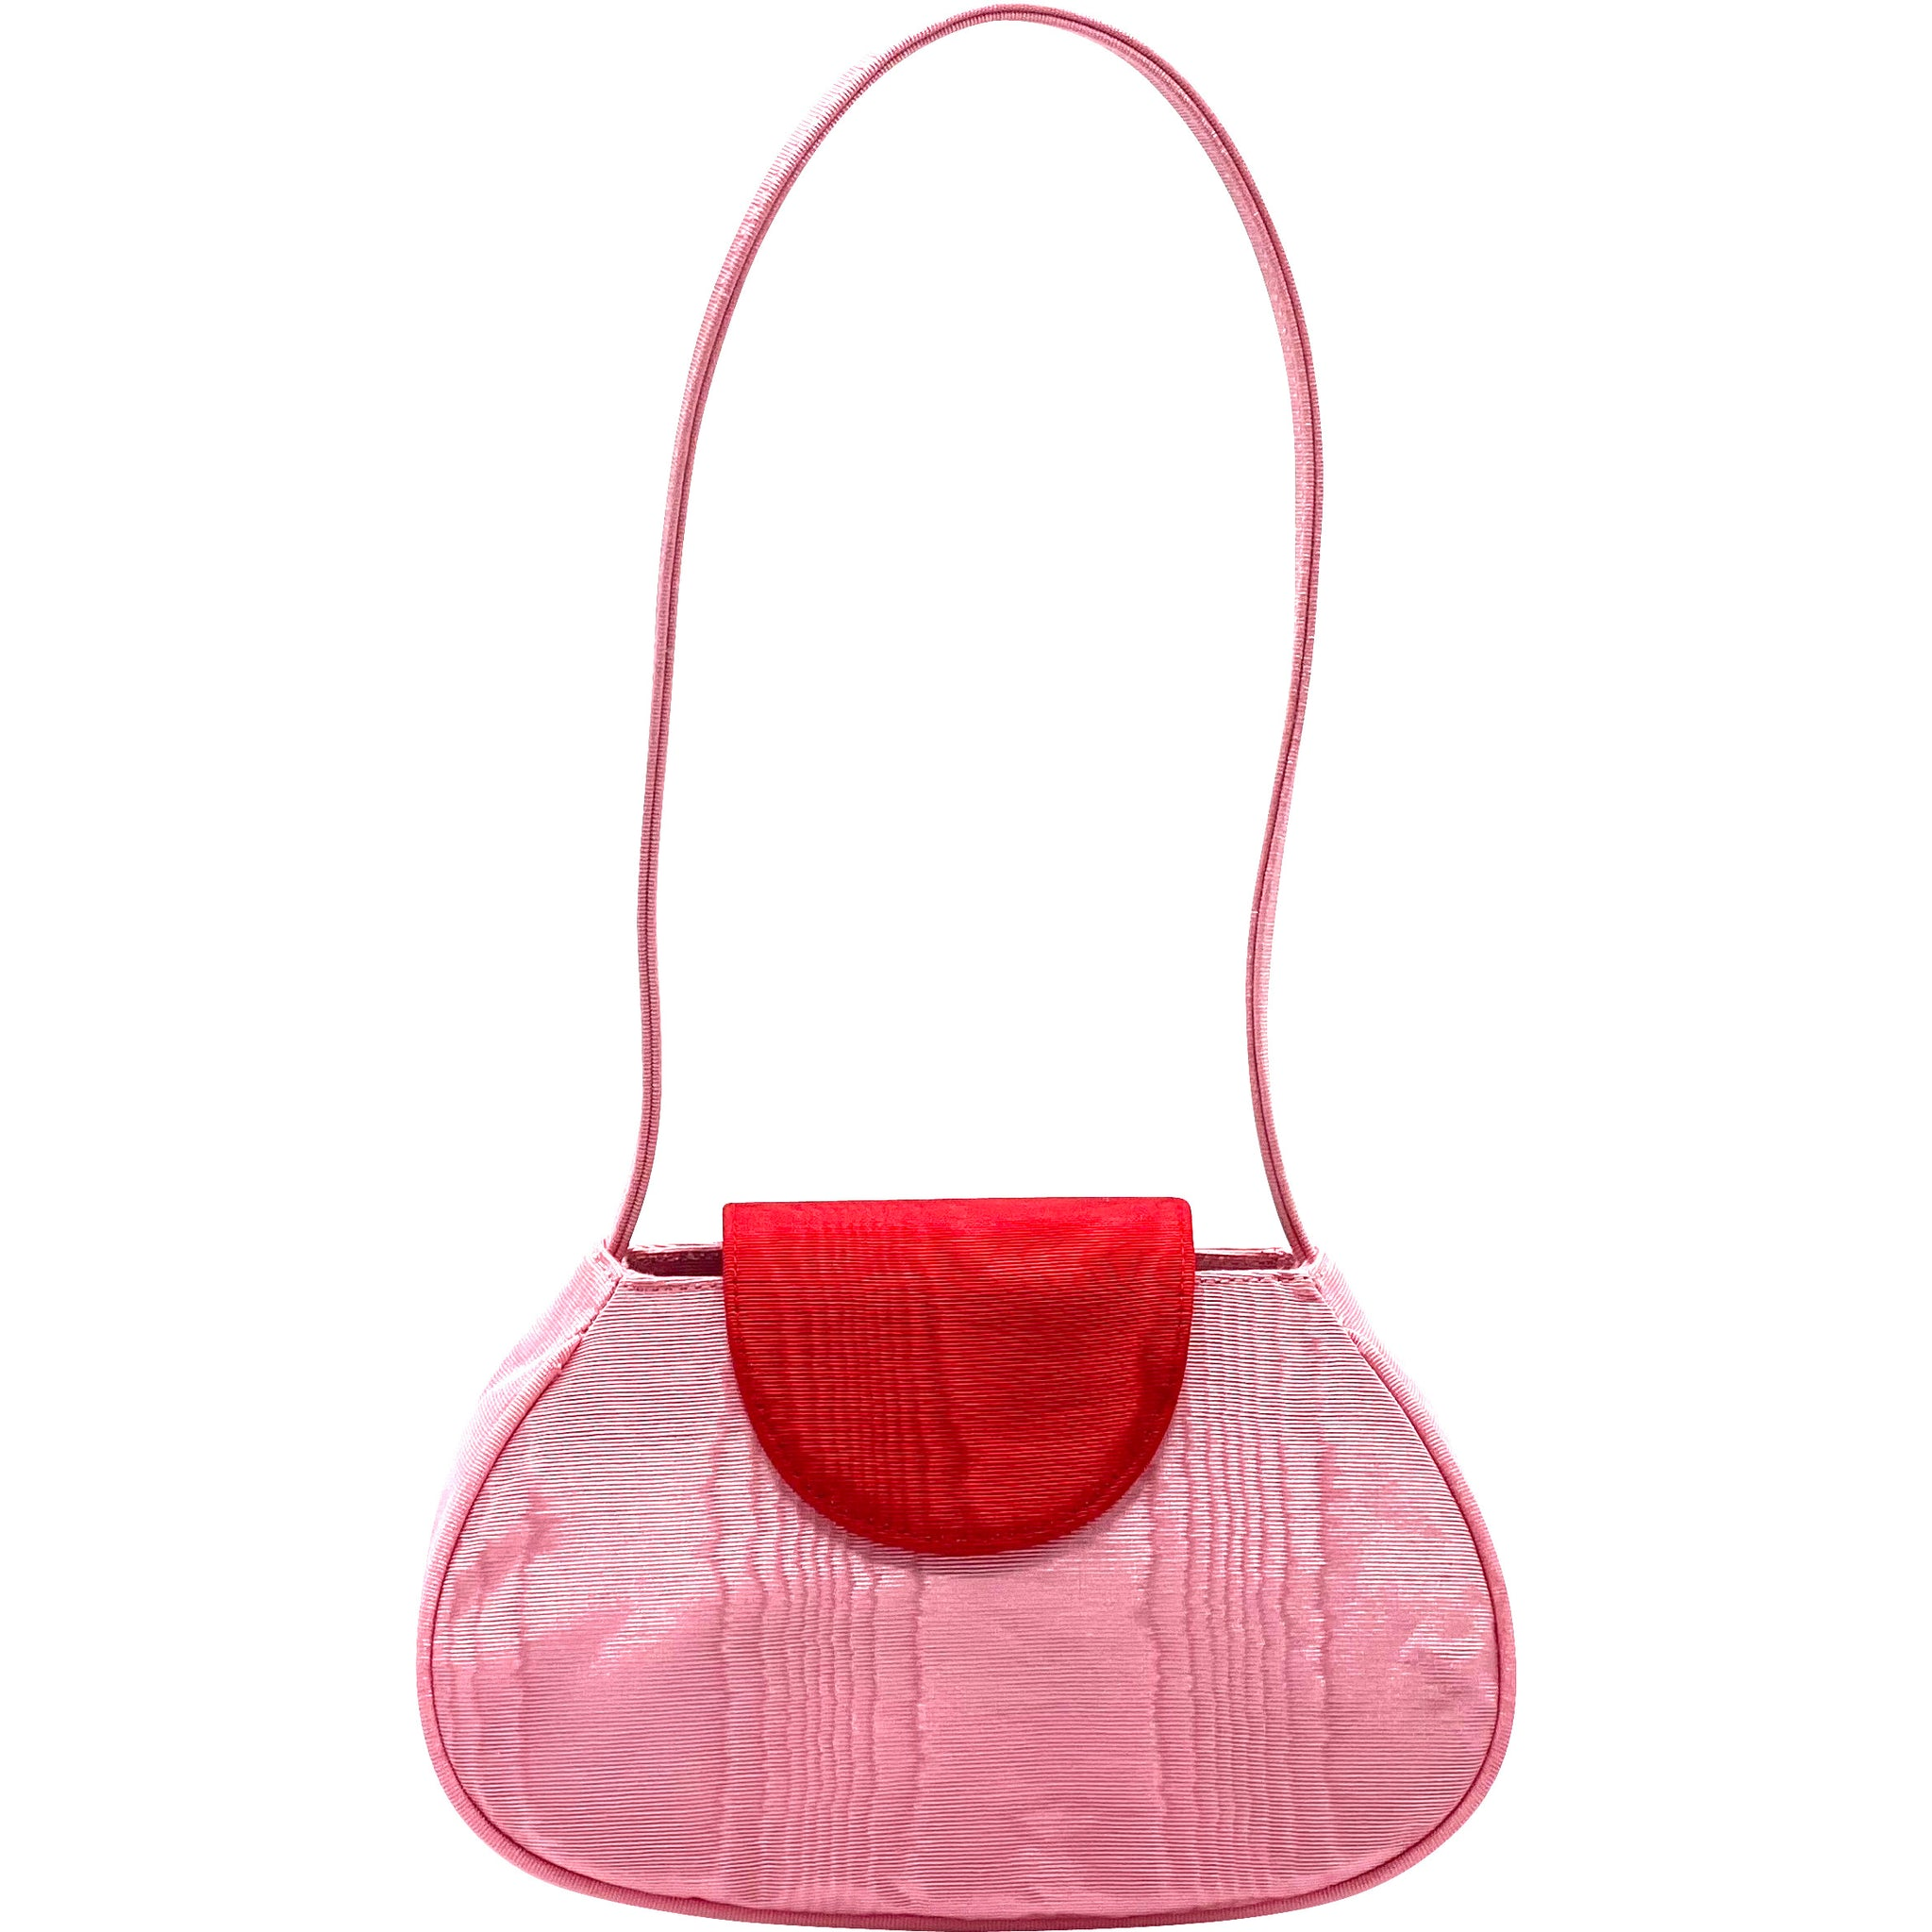 For the Ages x Neophyte Ineva Baguette in Red and Pink Moire